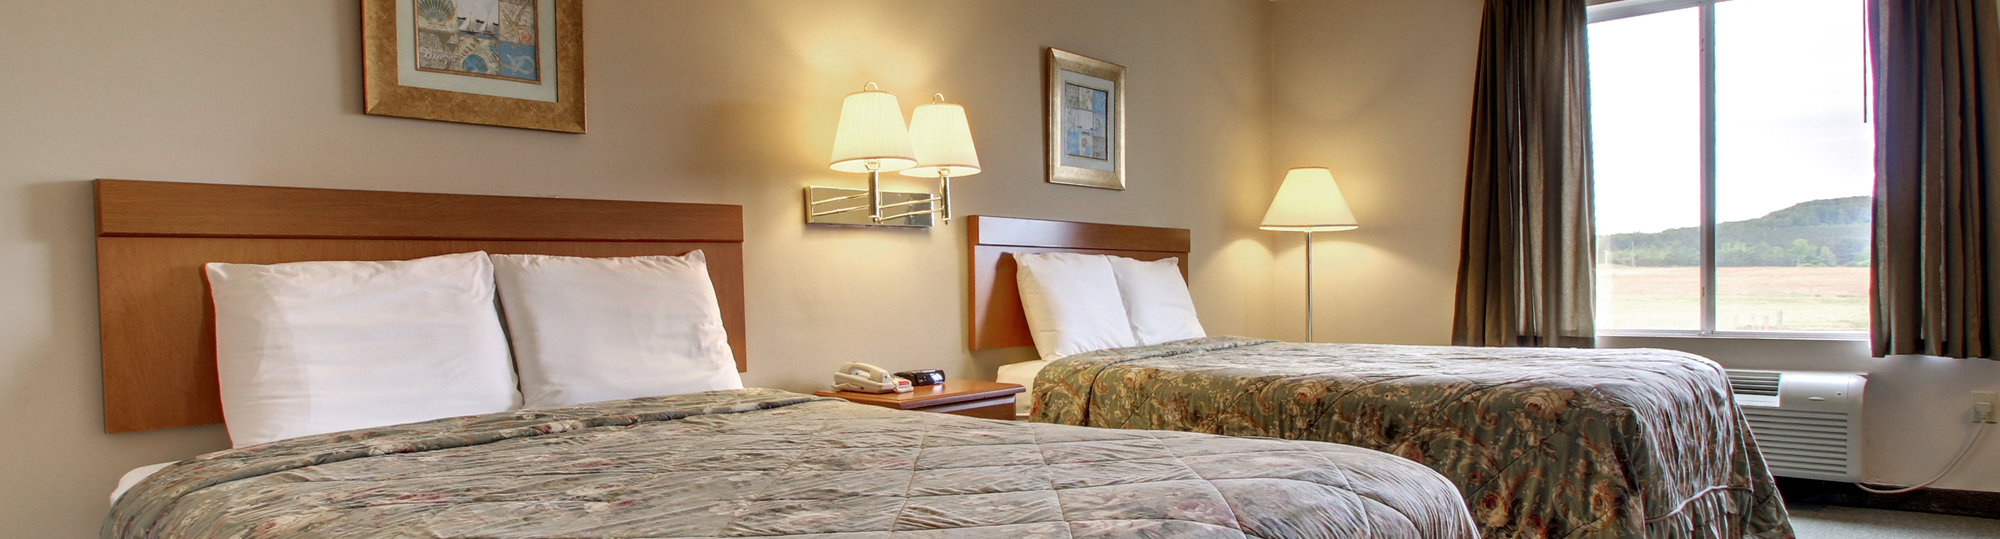 Key West Inn Hotels and Resorts Hamilton